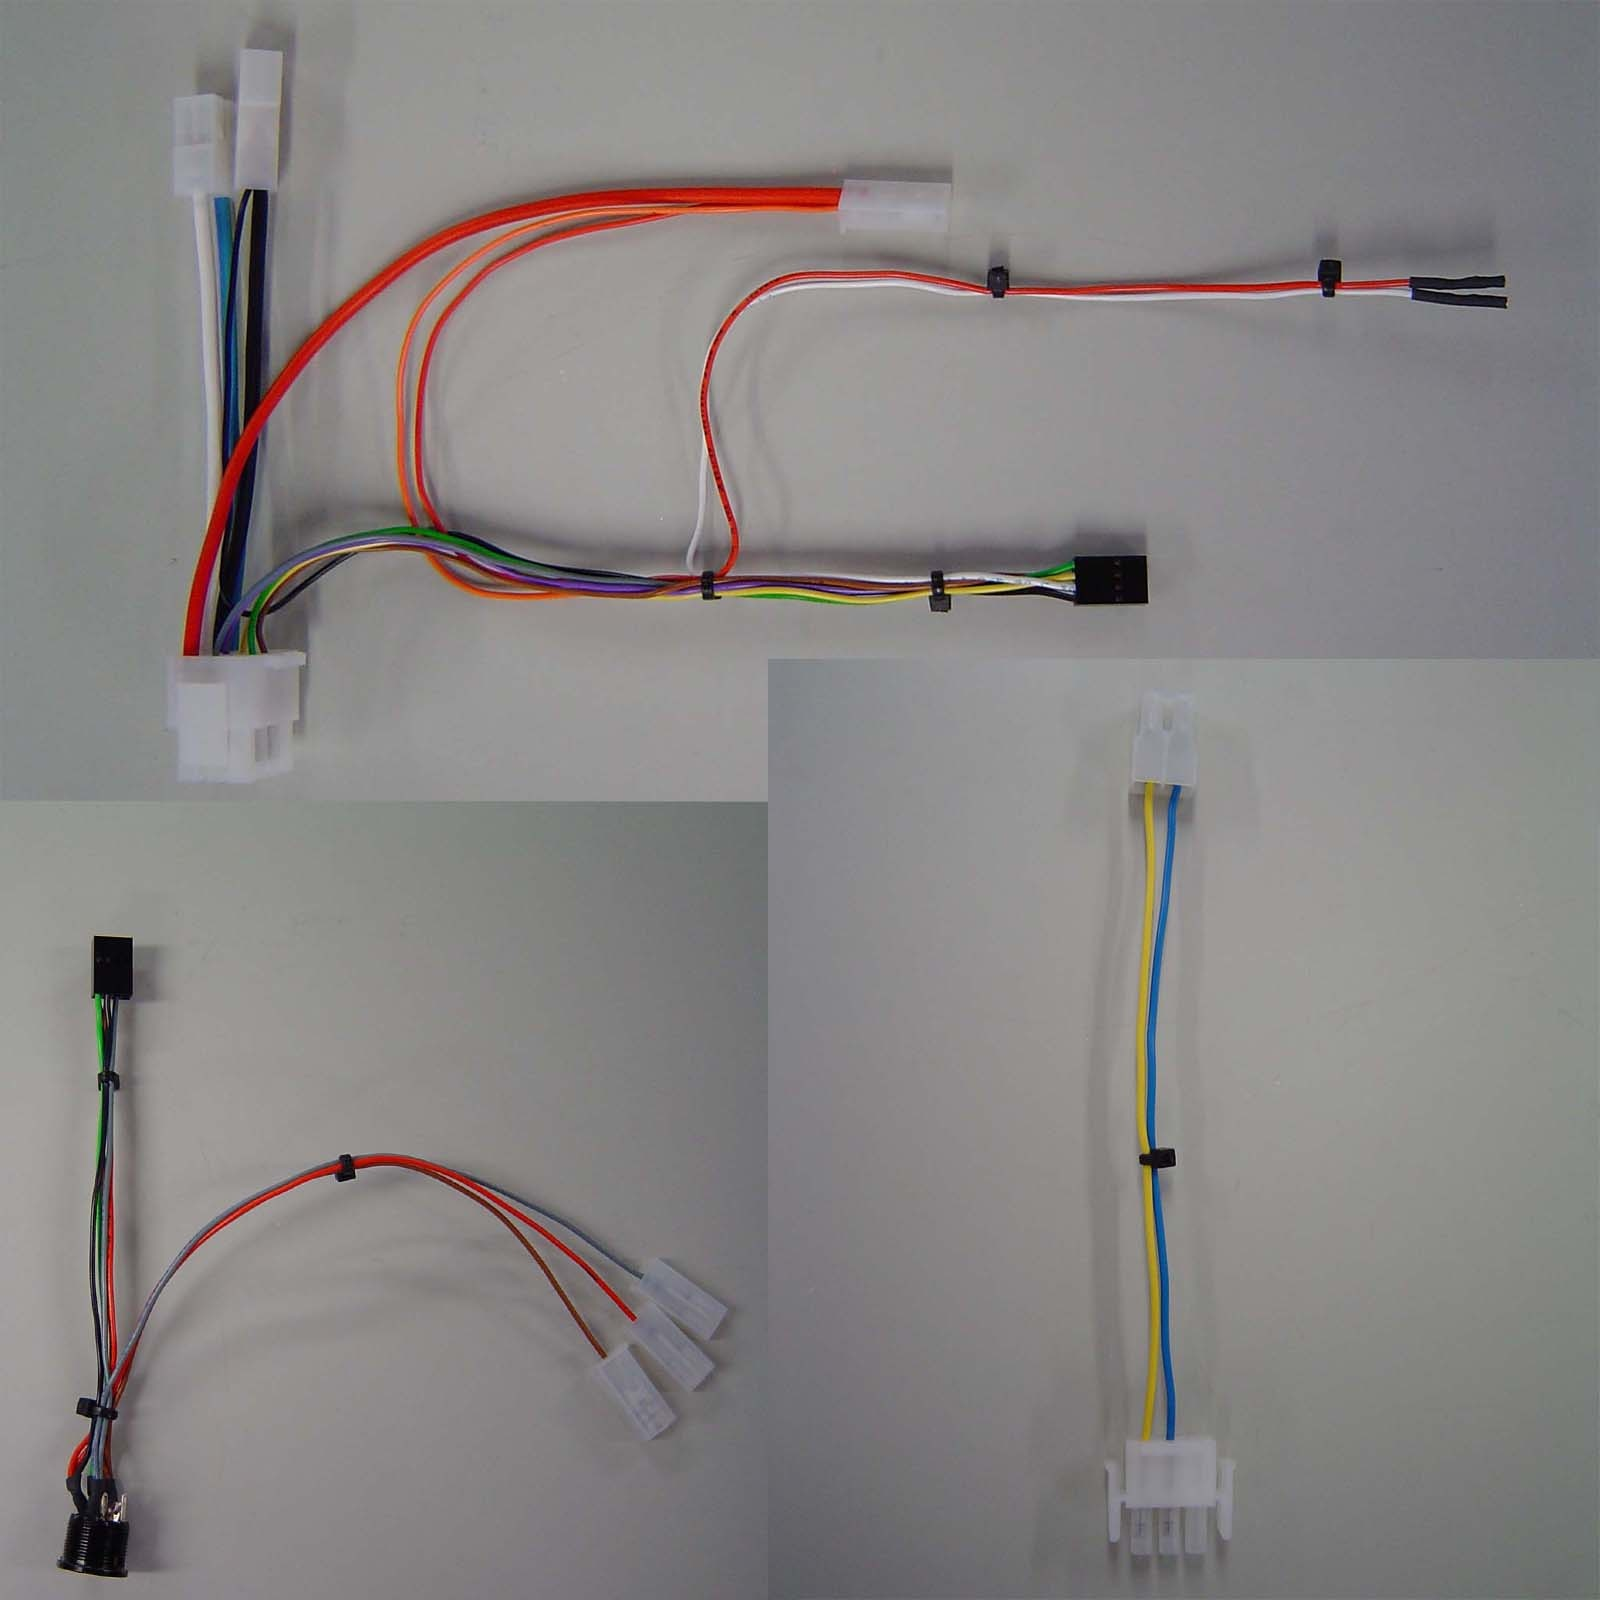 cable manufacturing & assembly co. inc,cable manufacturing assembly,cable assembly llc,cable harness assembly